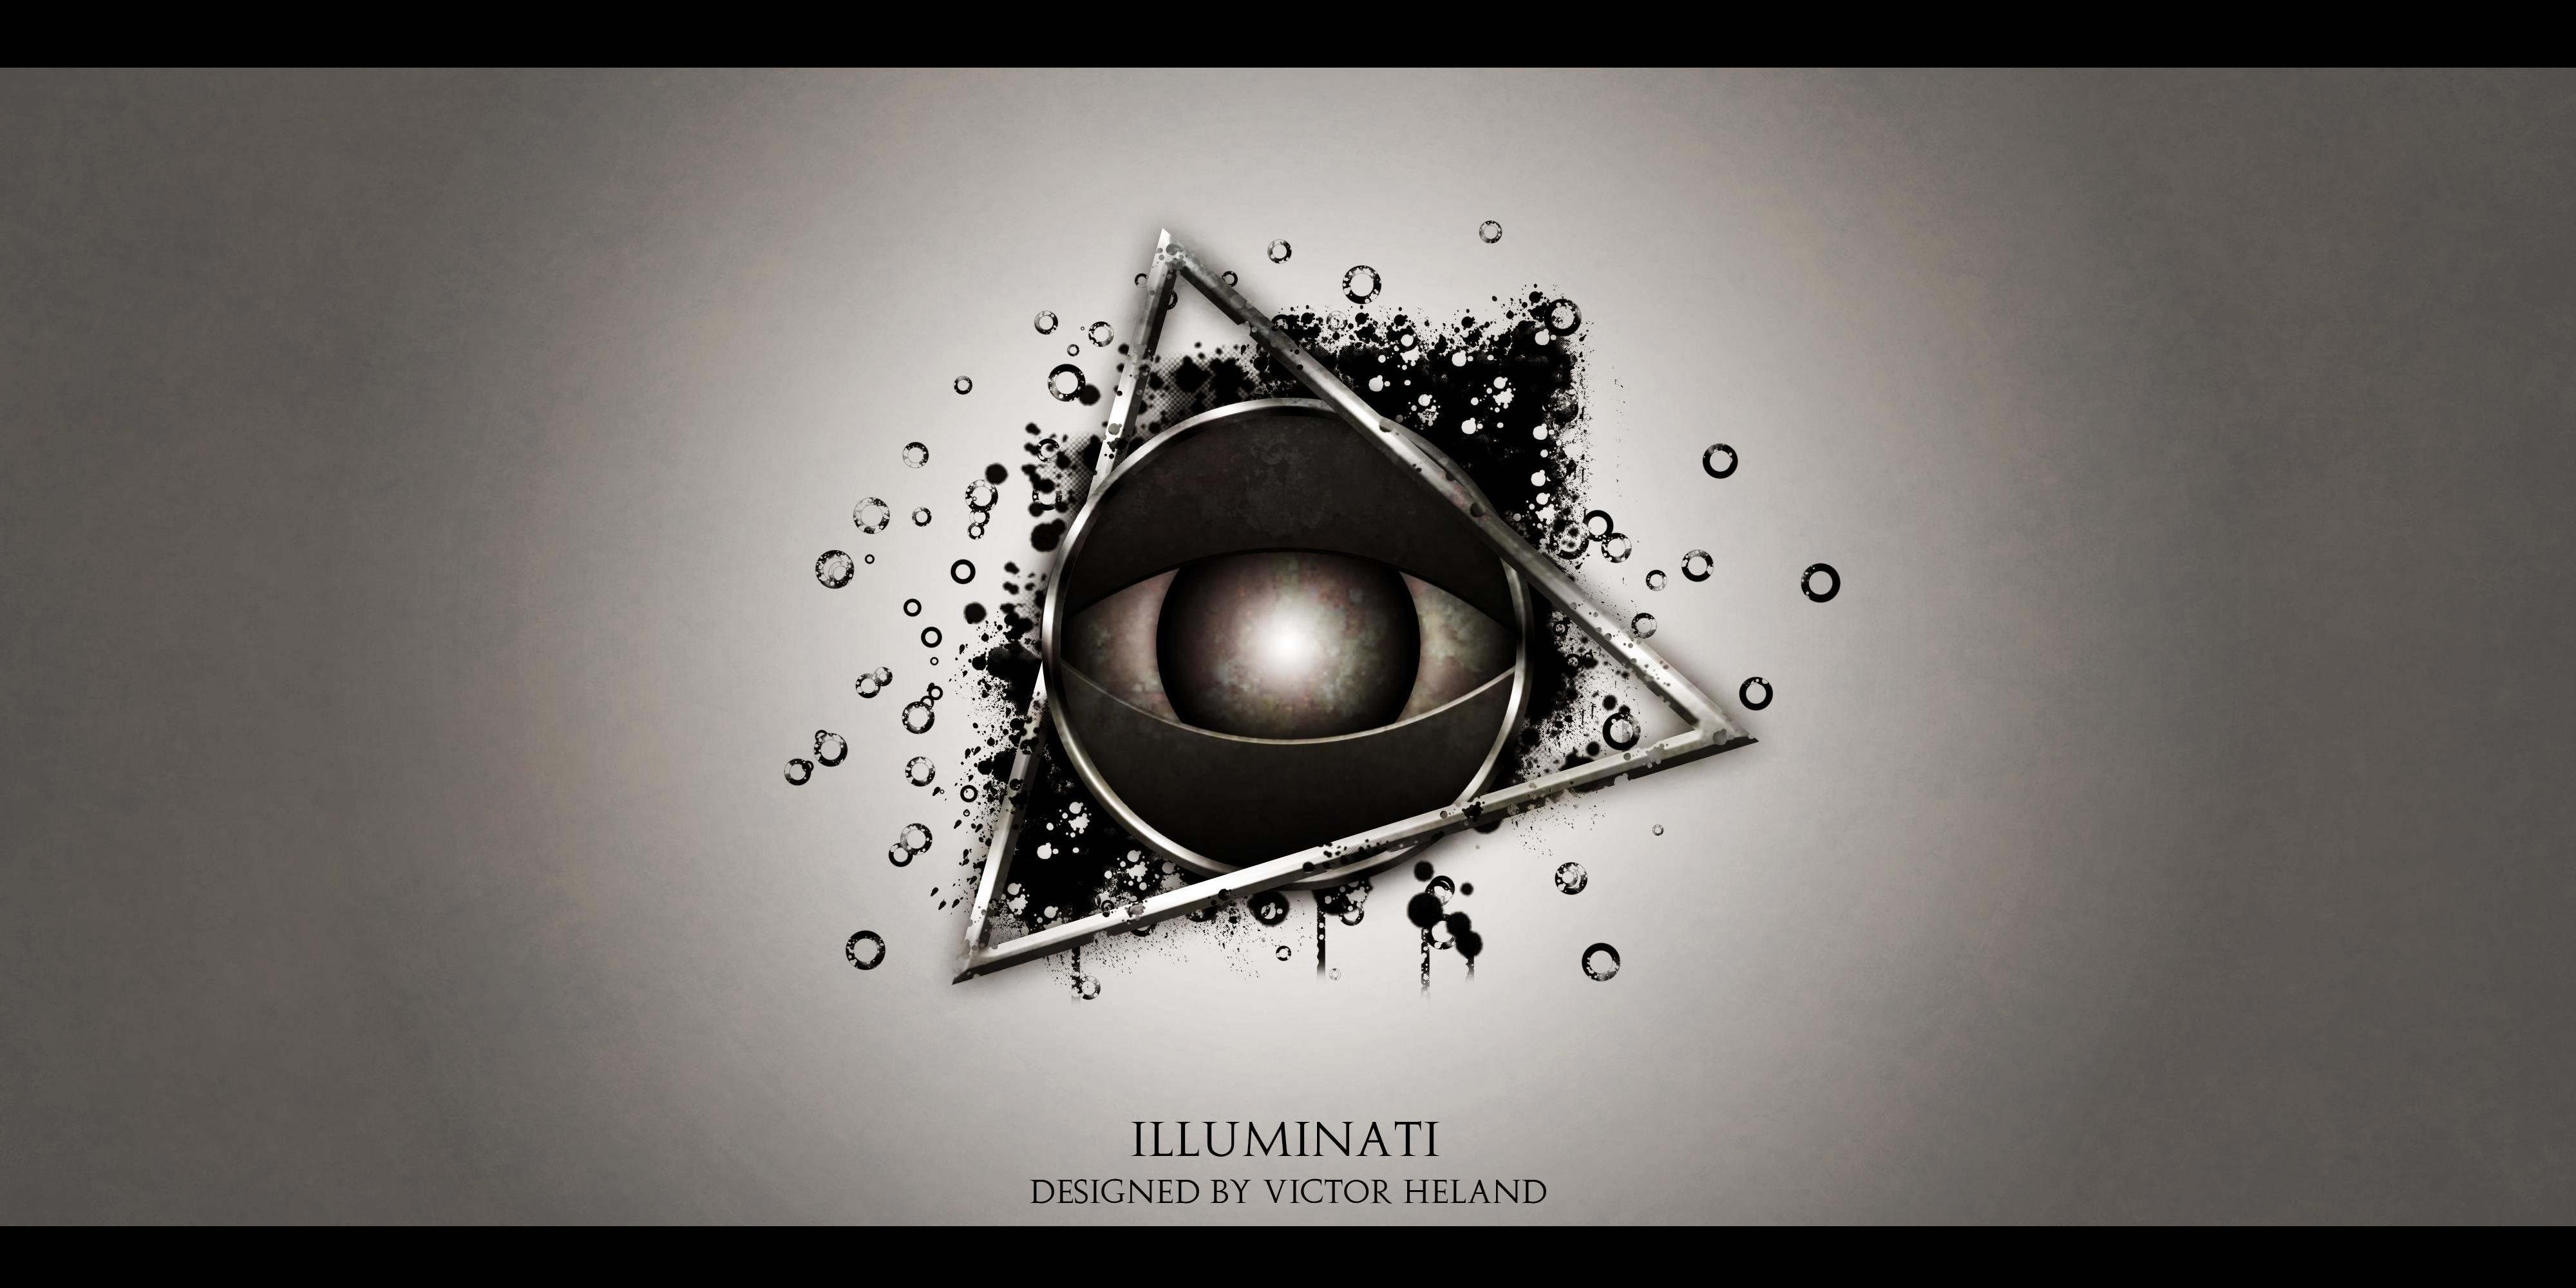 illuminati triangle wallpaper hd - photo #27